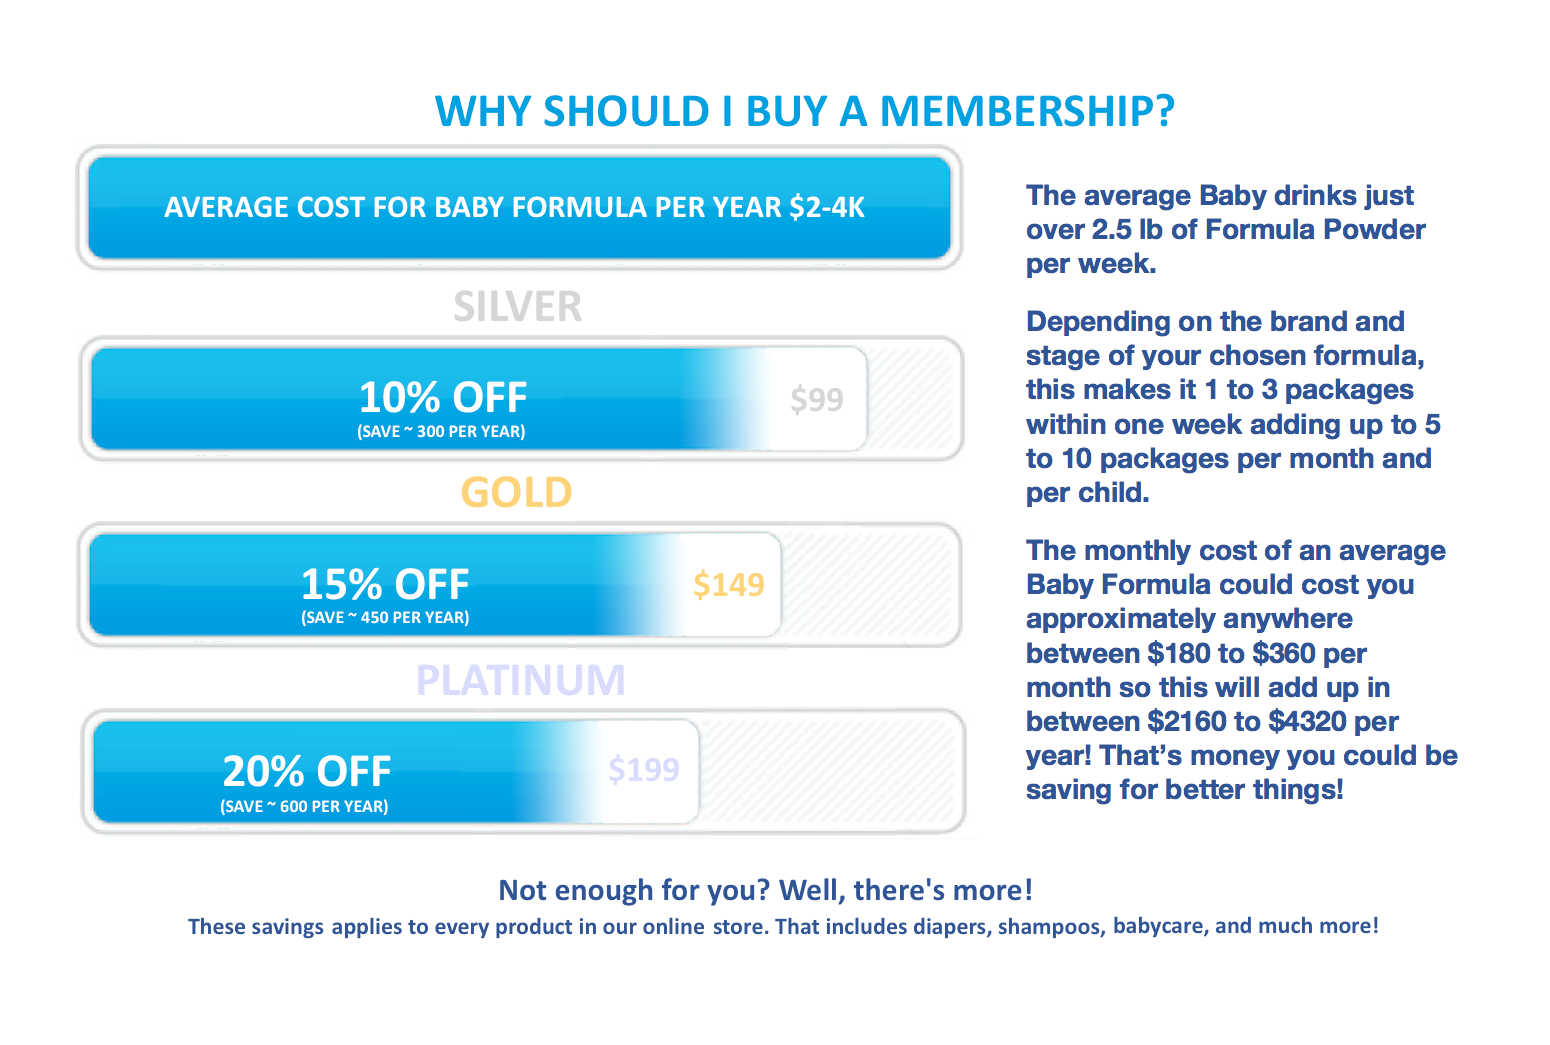 WHY BECOME A MEMBER - Baby Wholesale CLUB